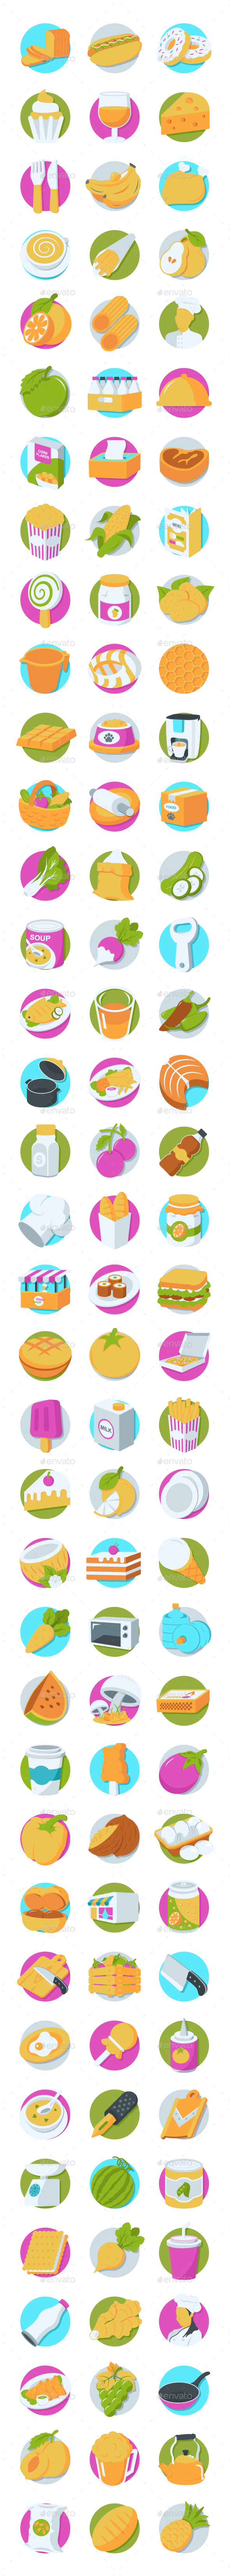 GraphicRiver 112 Food Perspective Icons 20749999